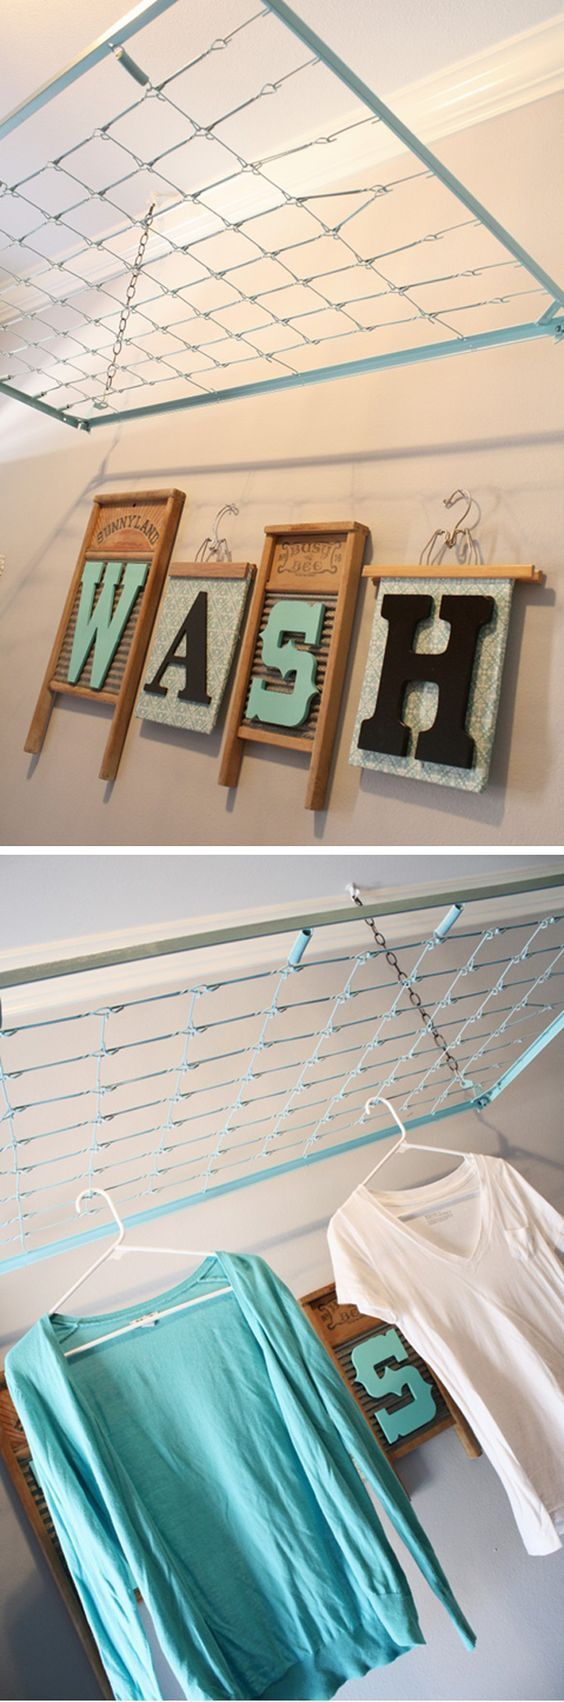 DIY Organization Ideas for Your Laundry Room DIYReady.com | Easy DIY Crafts, Fun Projects,